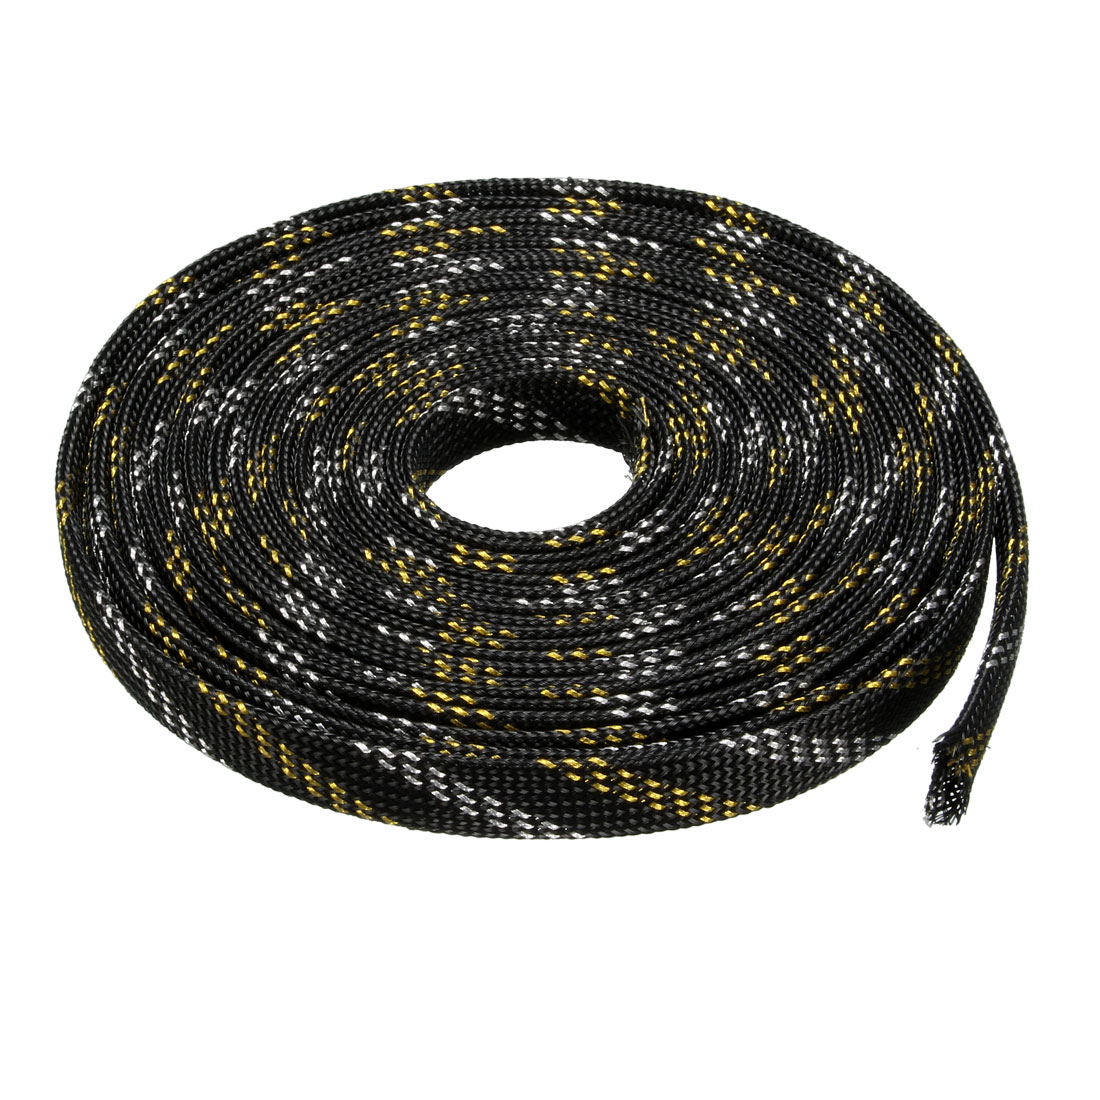 10mm PET Cable Wire Wrap Expandable Braided Sleeving Black Golden 5M Length